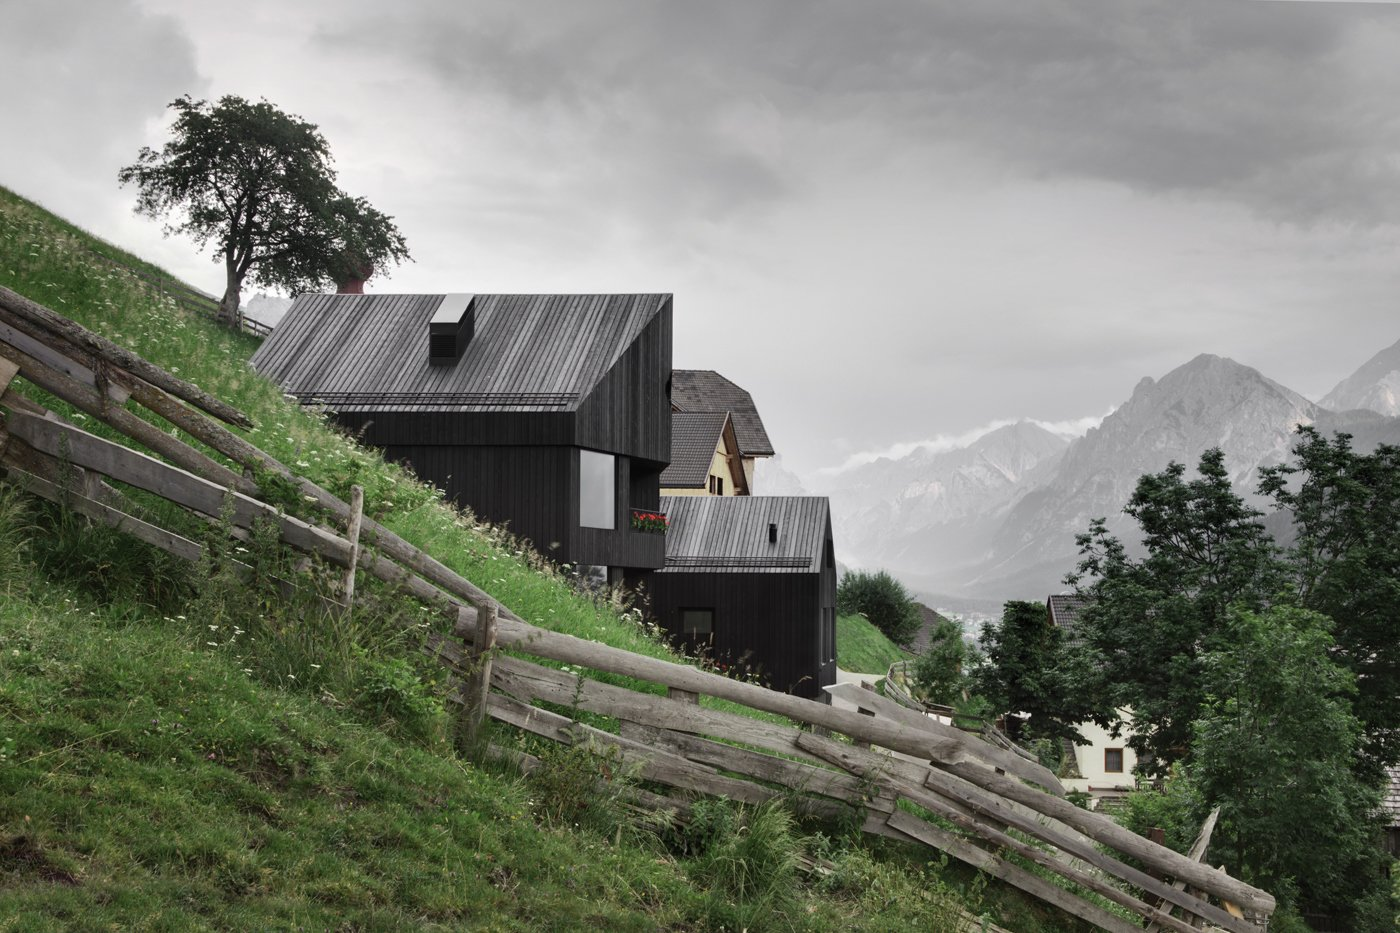 Exterior, House Building Type, Wood Siding Material, and Cabin Building Type Guests can buy fresh cheese, milk, and eggs from the neighbors.   La Pedevilla